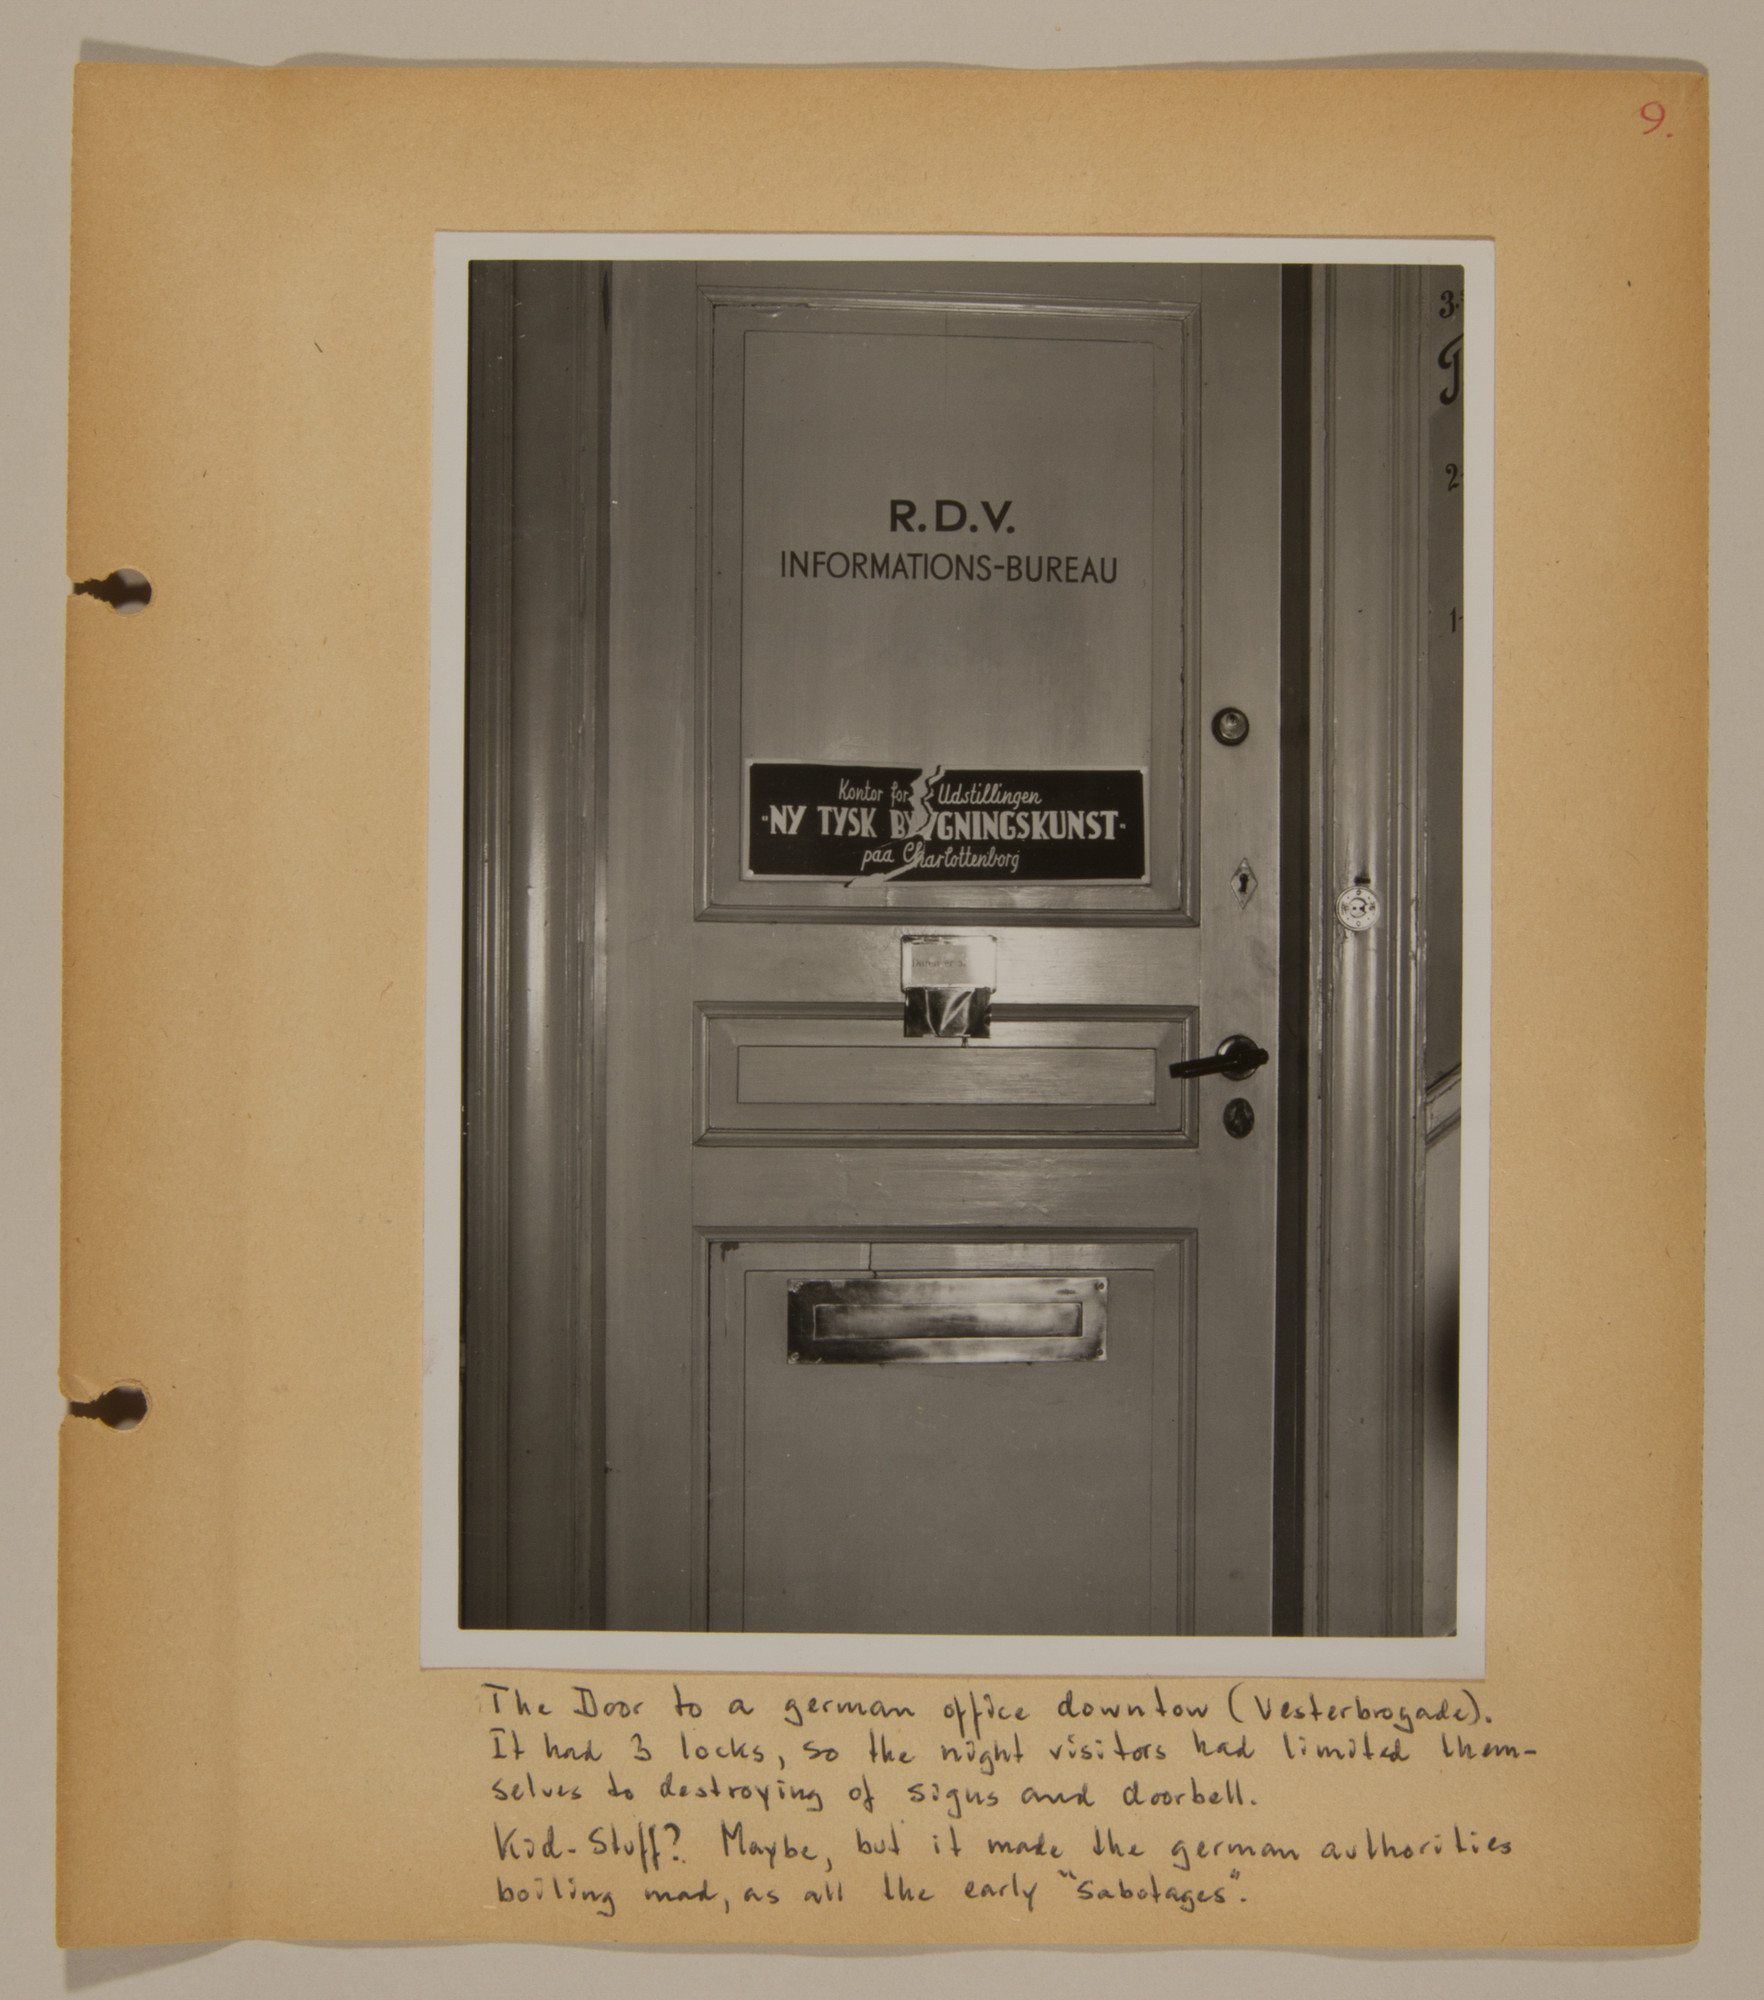 Page from volume two of a set of scrapbooks compiled by Bjorn Sibbern, a Danish policeman and resistance member, documenting the German occupation of Denmark.  This page has a photograph of the outside door to a German office with three locks and an example of early sabotage.